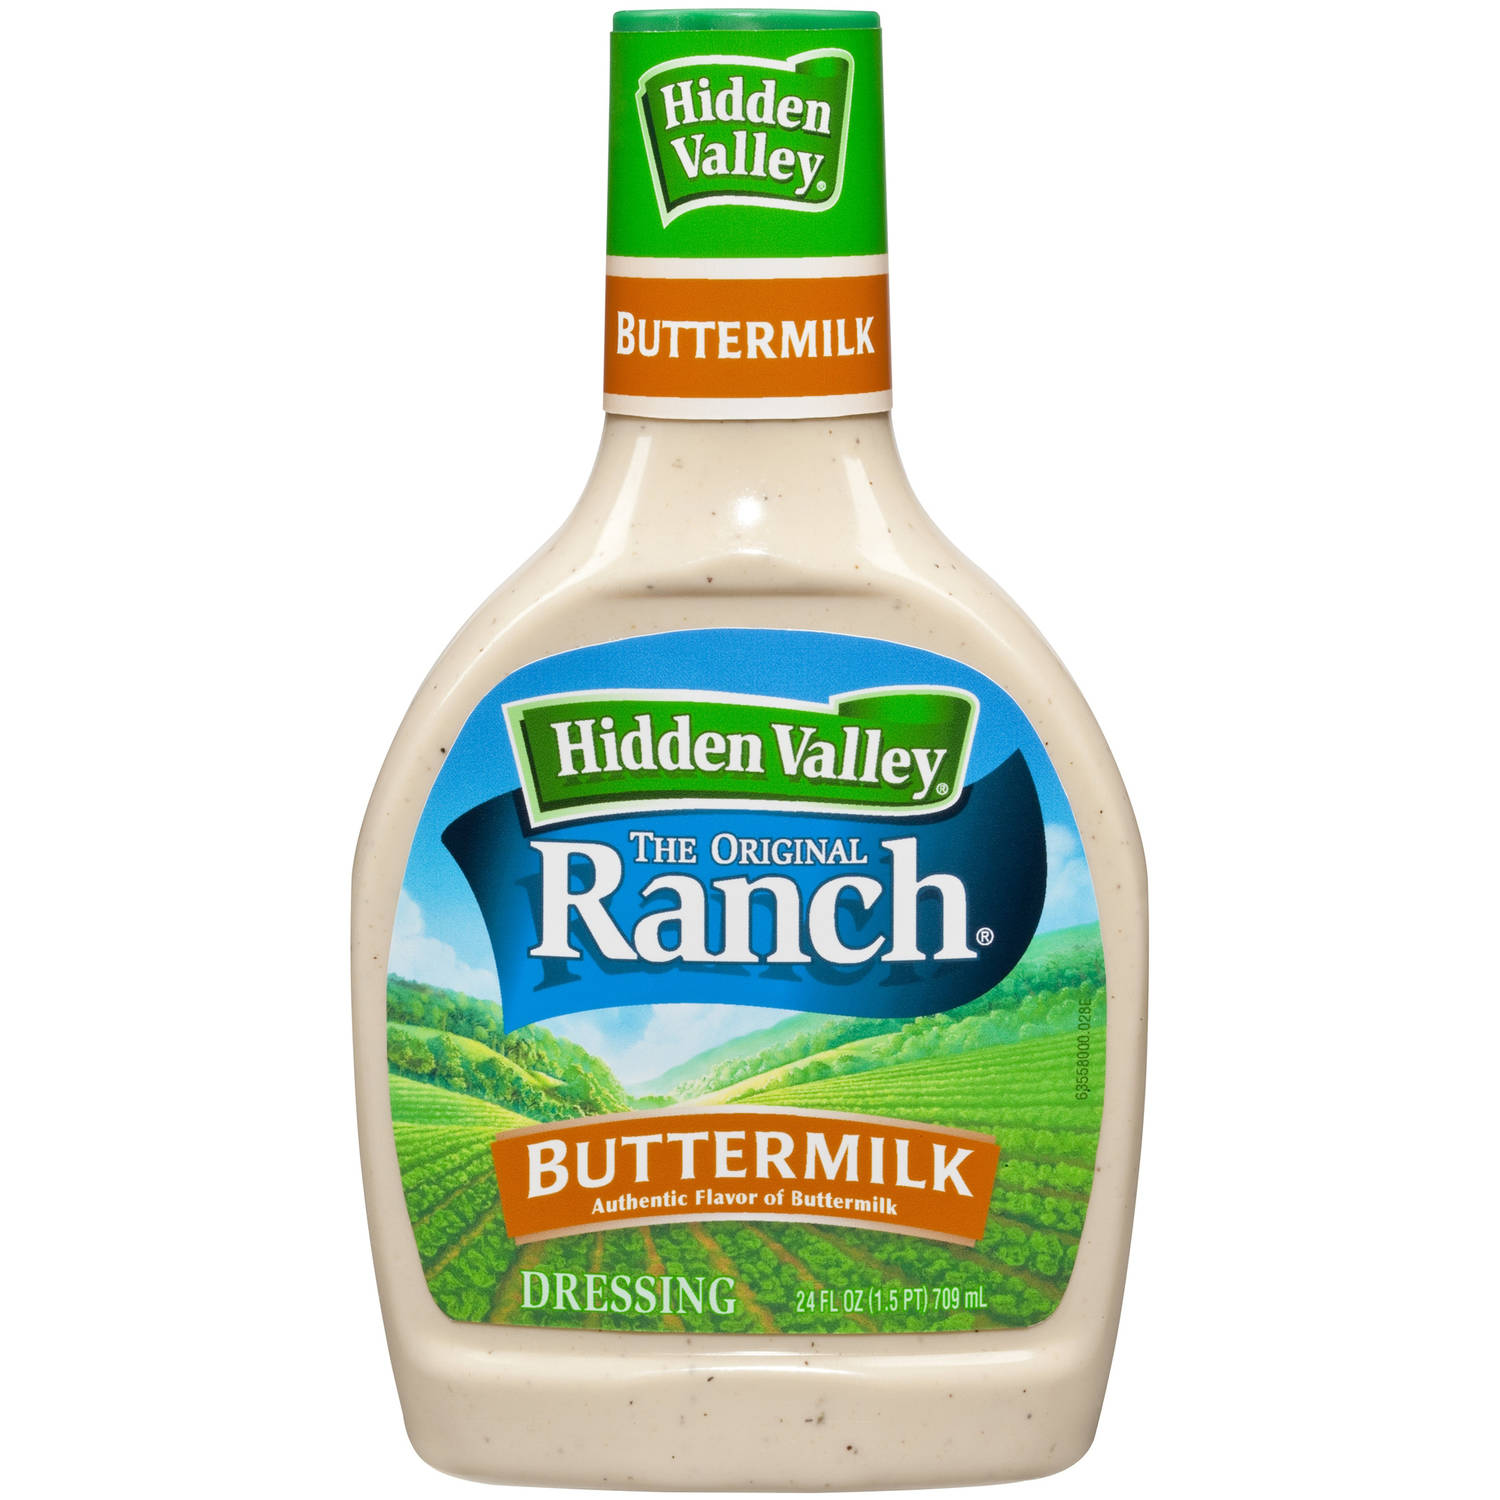 Hidden Valley The Original Ranch Old-Fashioned Buttermilk Salad Dressing, 24 Fluid Ounces